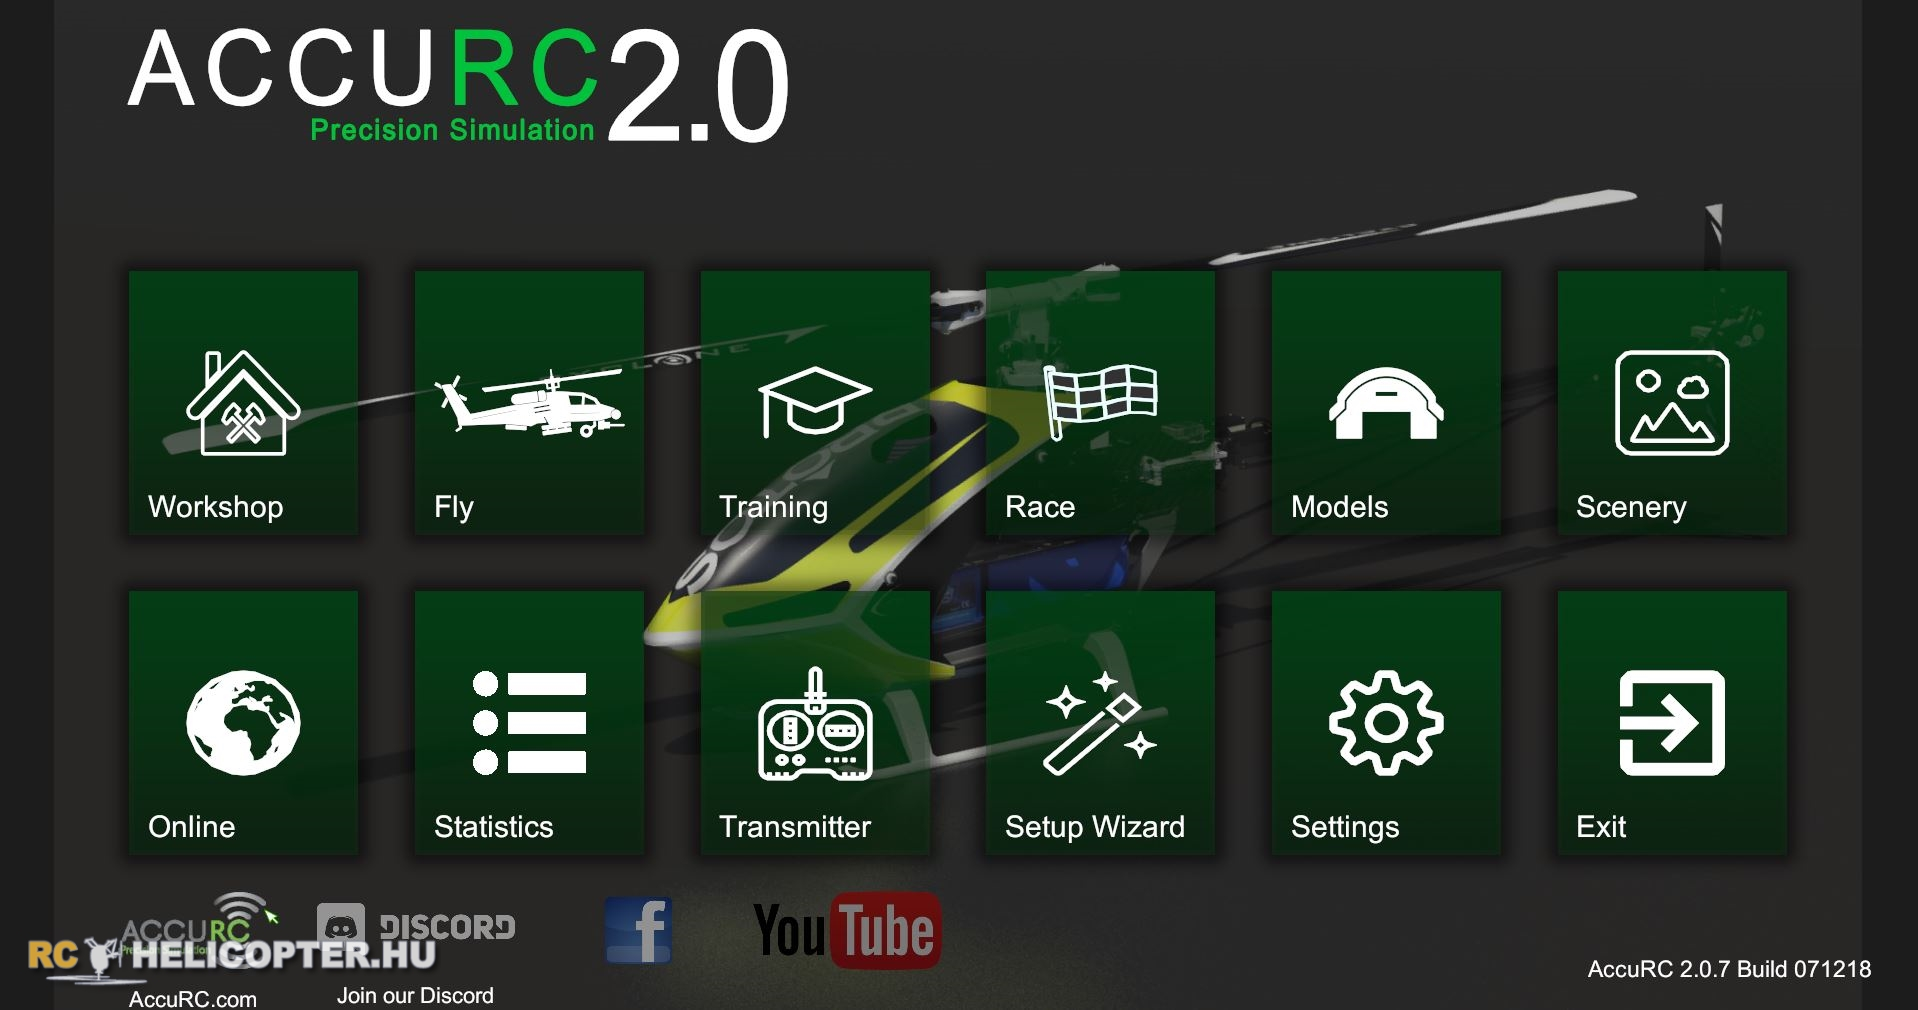 RC Helicopter Simulator: AccuRC 2 - rchelicopterhu uk